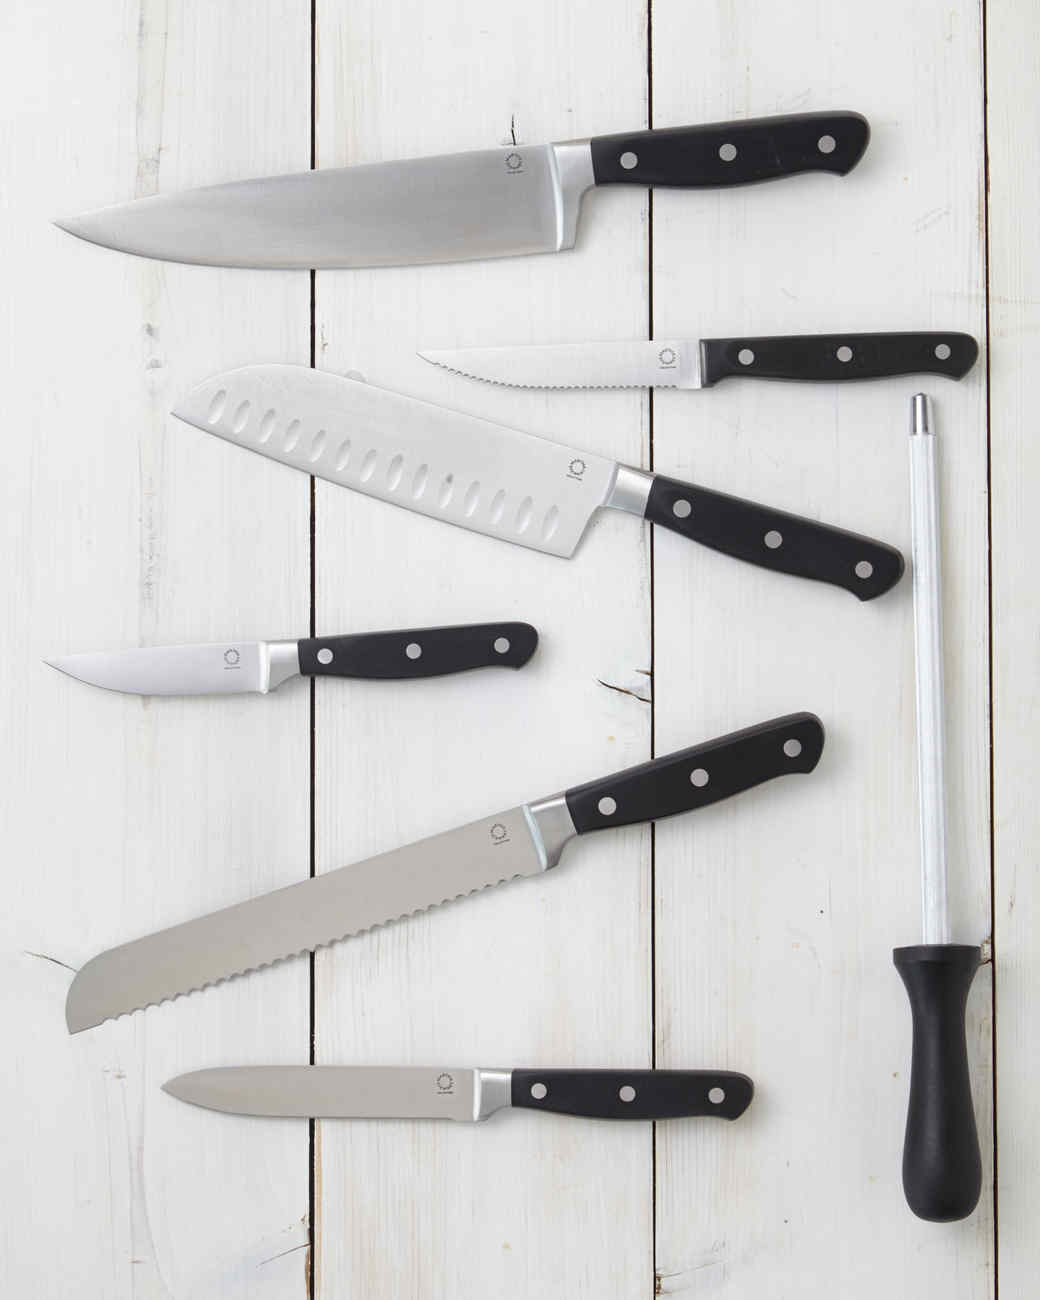 buying knives what you need to know martha stewart knife shopping what to look for